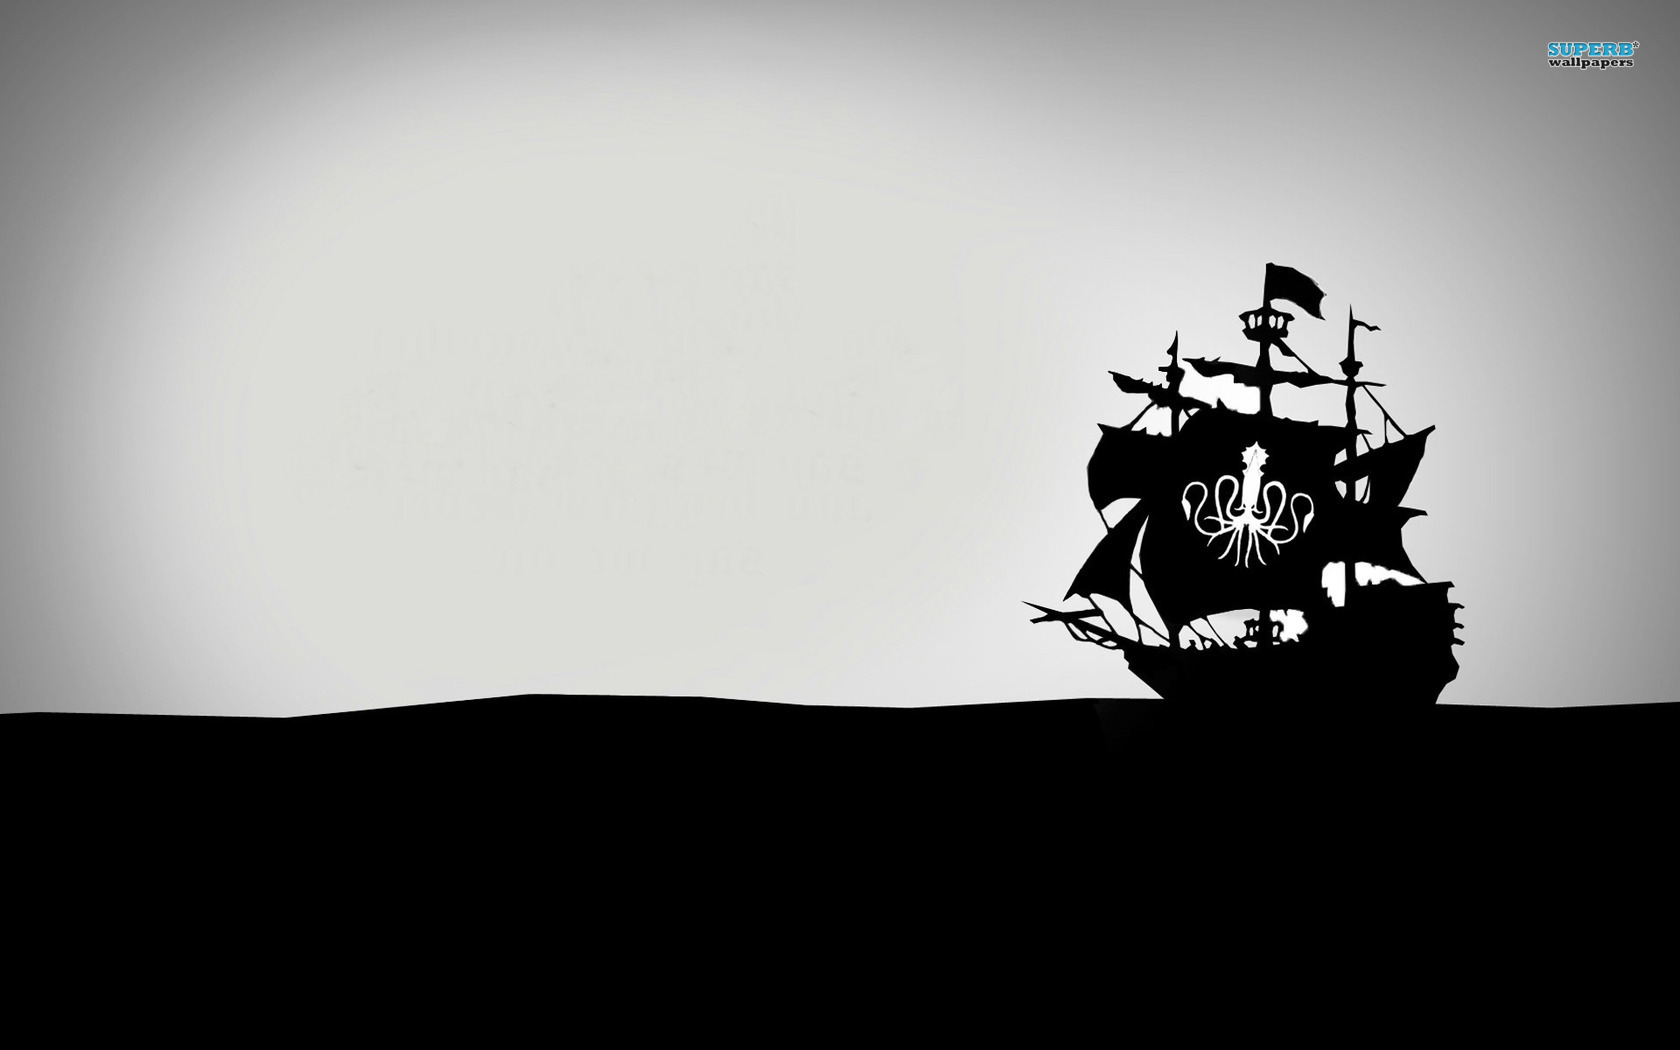 Pirates Of The Caribbean clipart pirate ship Wallpaper Wallpaper Wallpapers #510 Ship